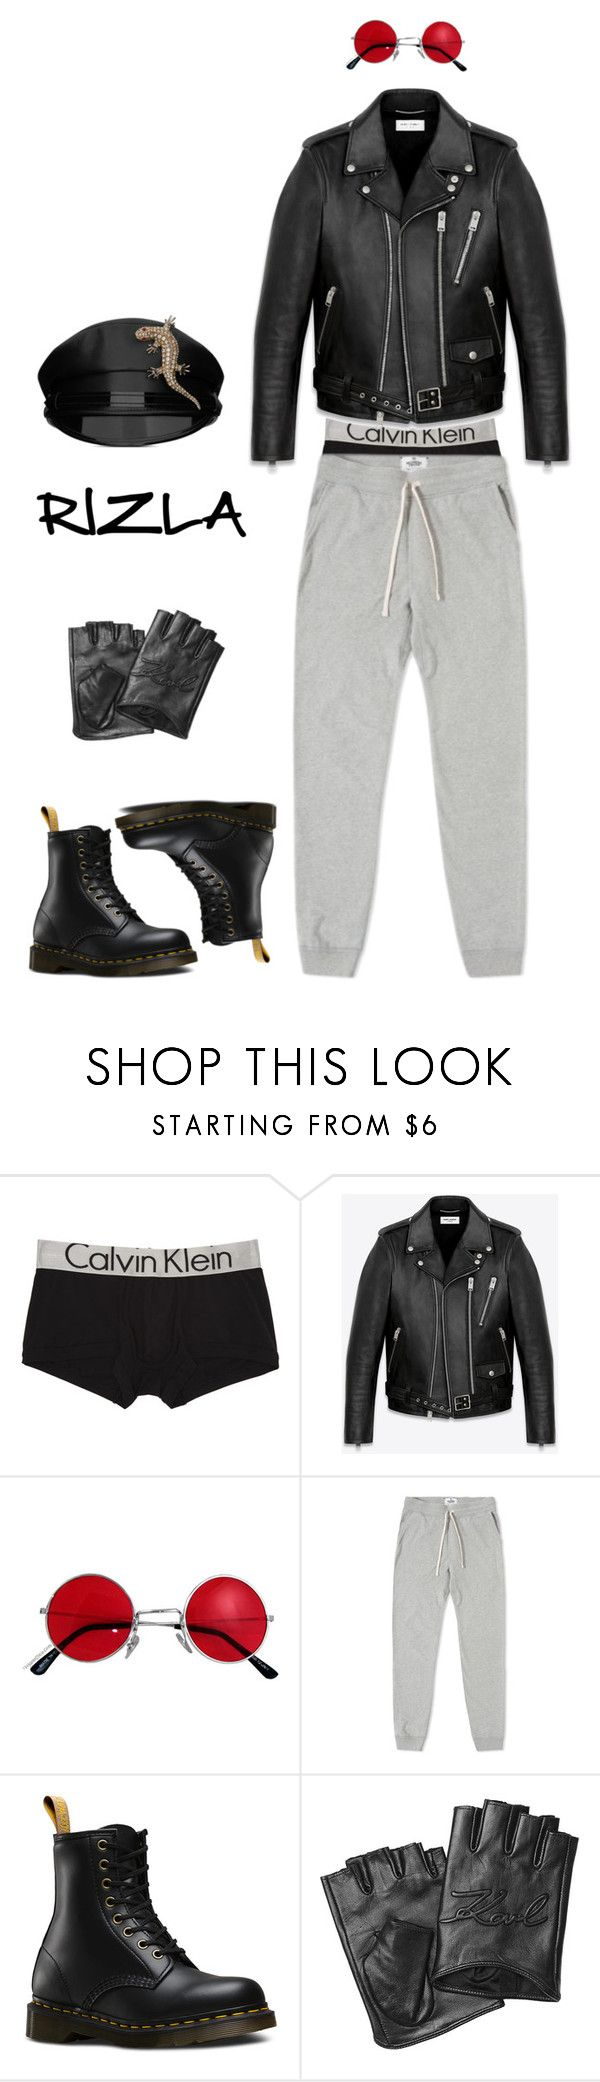 """""""CUNTroversy"""" by rollinrizla ❤ liked on Polyvore featuring Calvin Klein Underwear, Yves Saint Laurent, Reigning Champ, Dr. Martens, Karl Lagerfeld, men's fashion and menswear"""